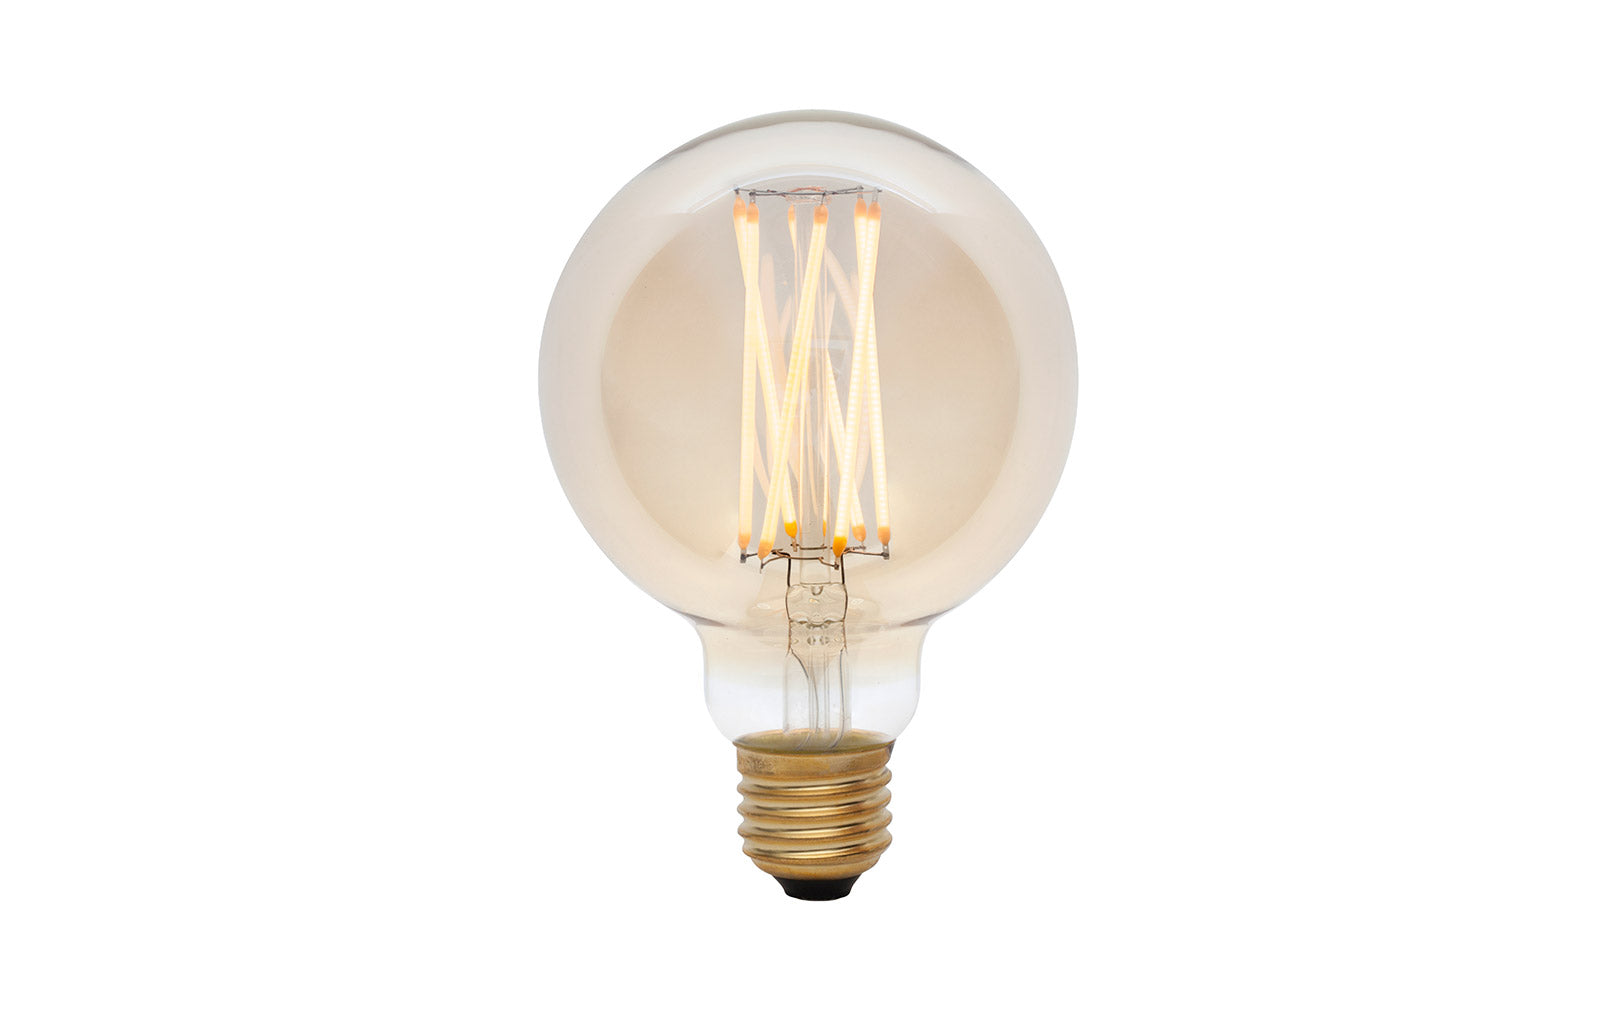 Our guide to choosing the right light bulb - Tom Raffield